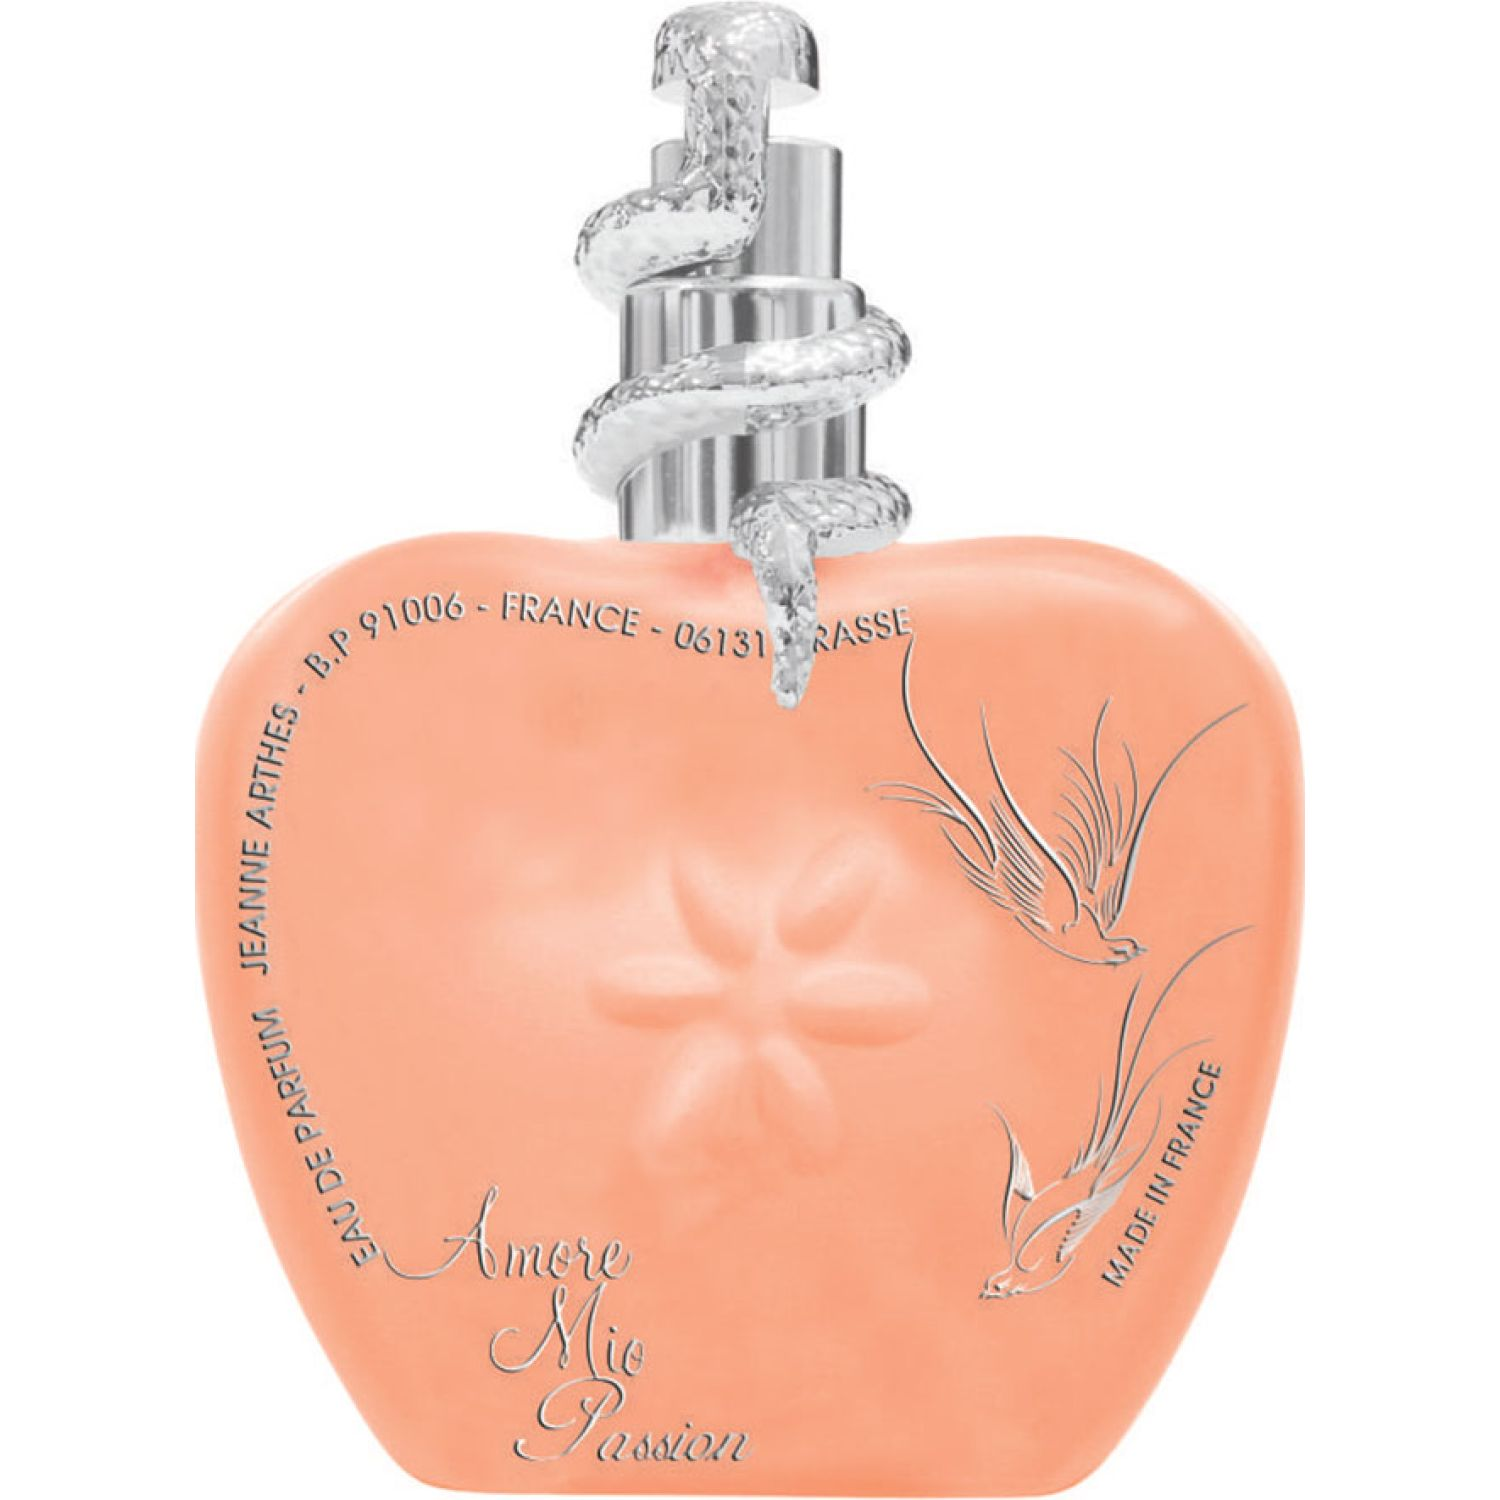 JEANNE ARTHES Amore Mio Passion Edp 100ml Rojo Colonia